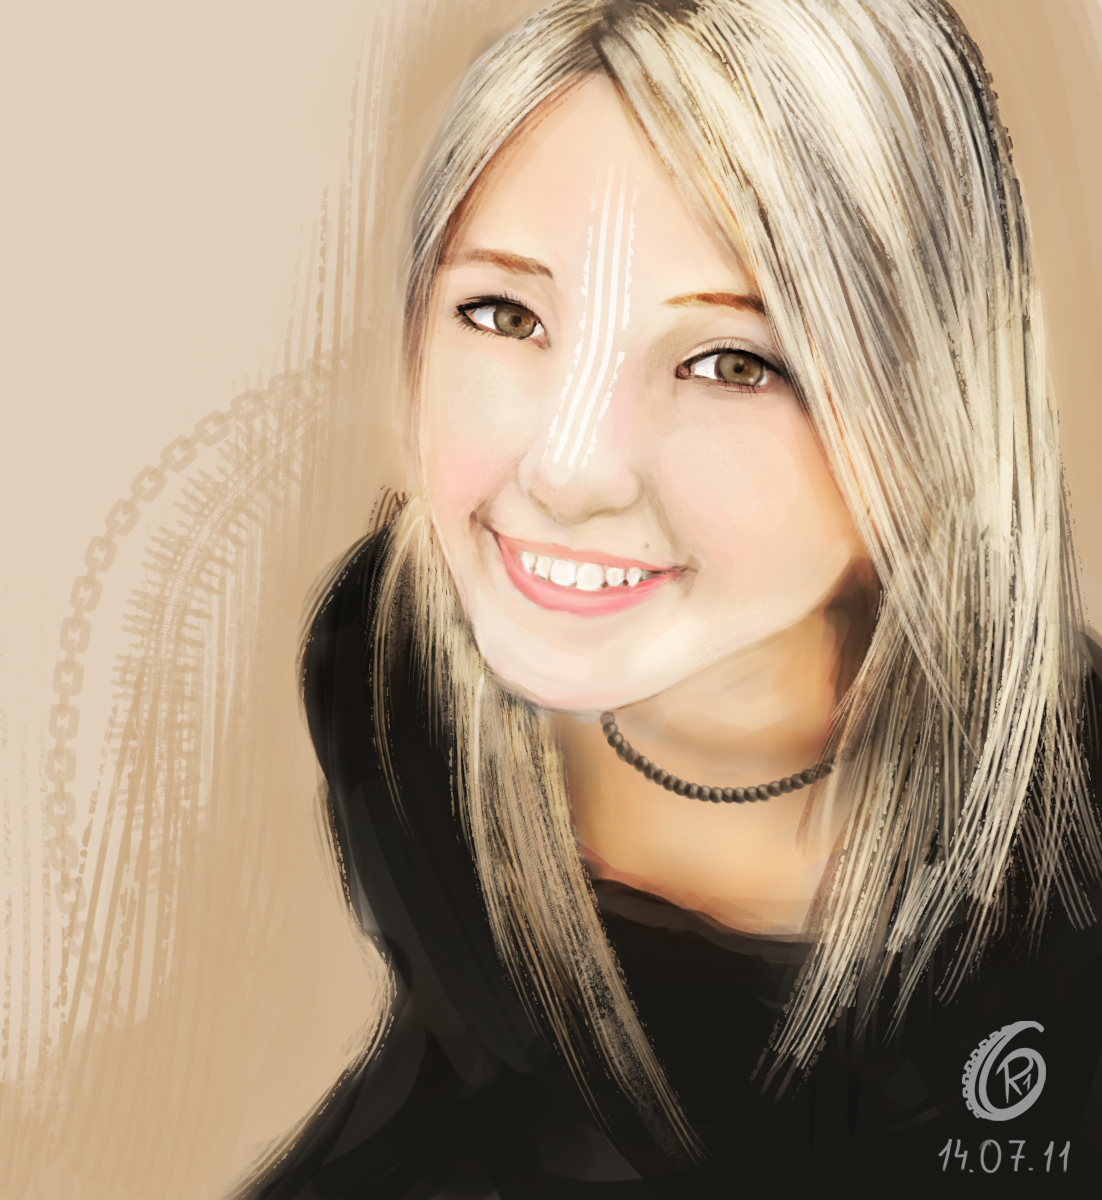 Lia marie johnson by crazyudjin Lia marie johnson by crazyudjin - lia_marie_johnson_by_crazyudjin-d3r8ipp